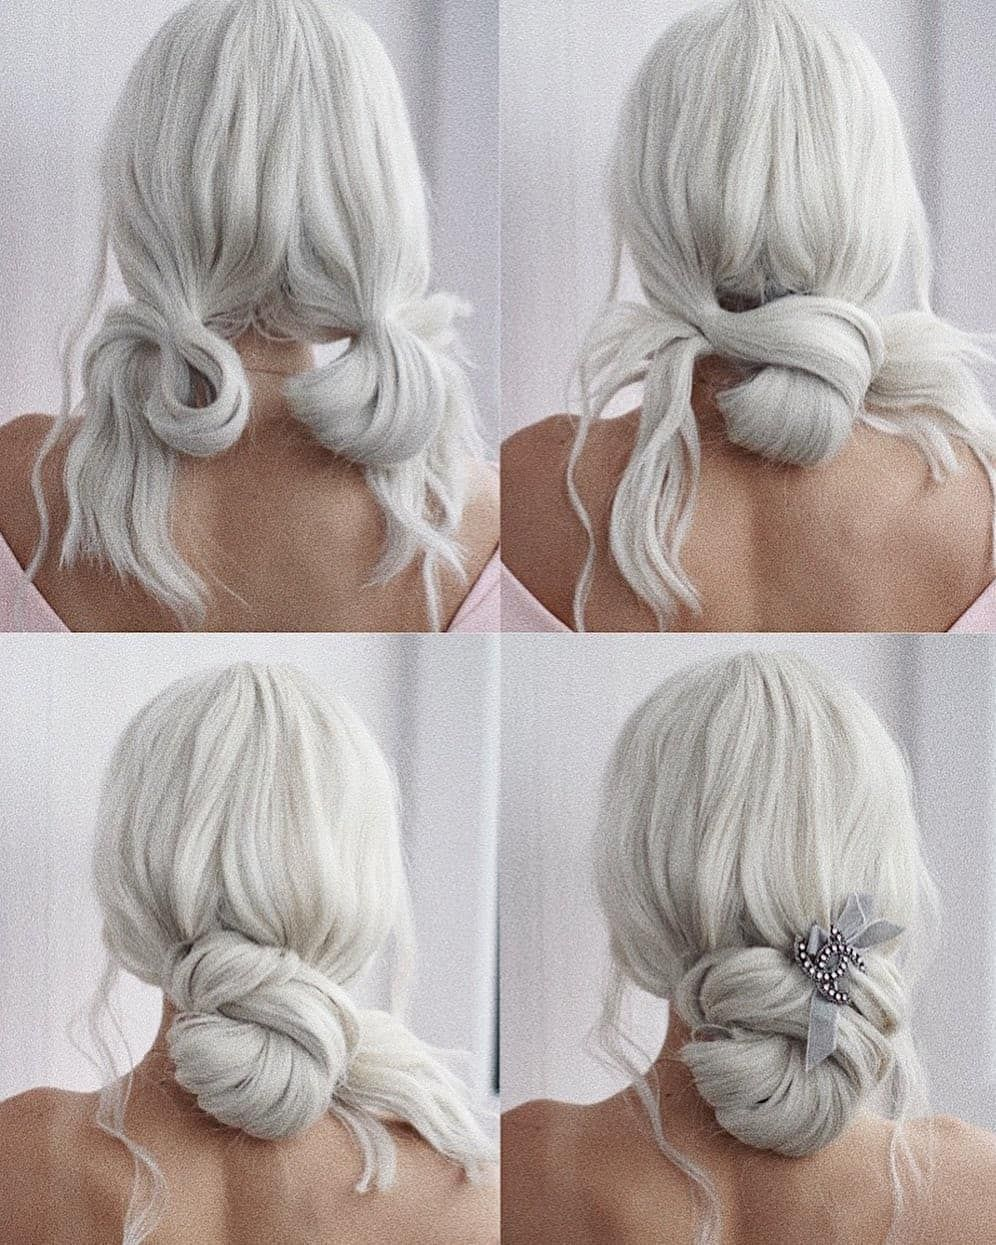 Stunning Hairstyle tutorial